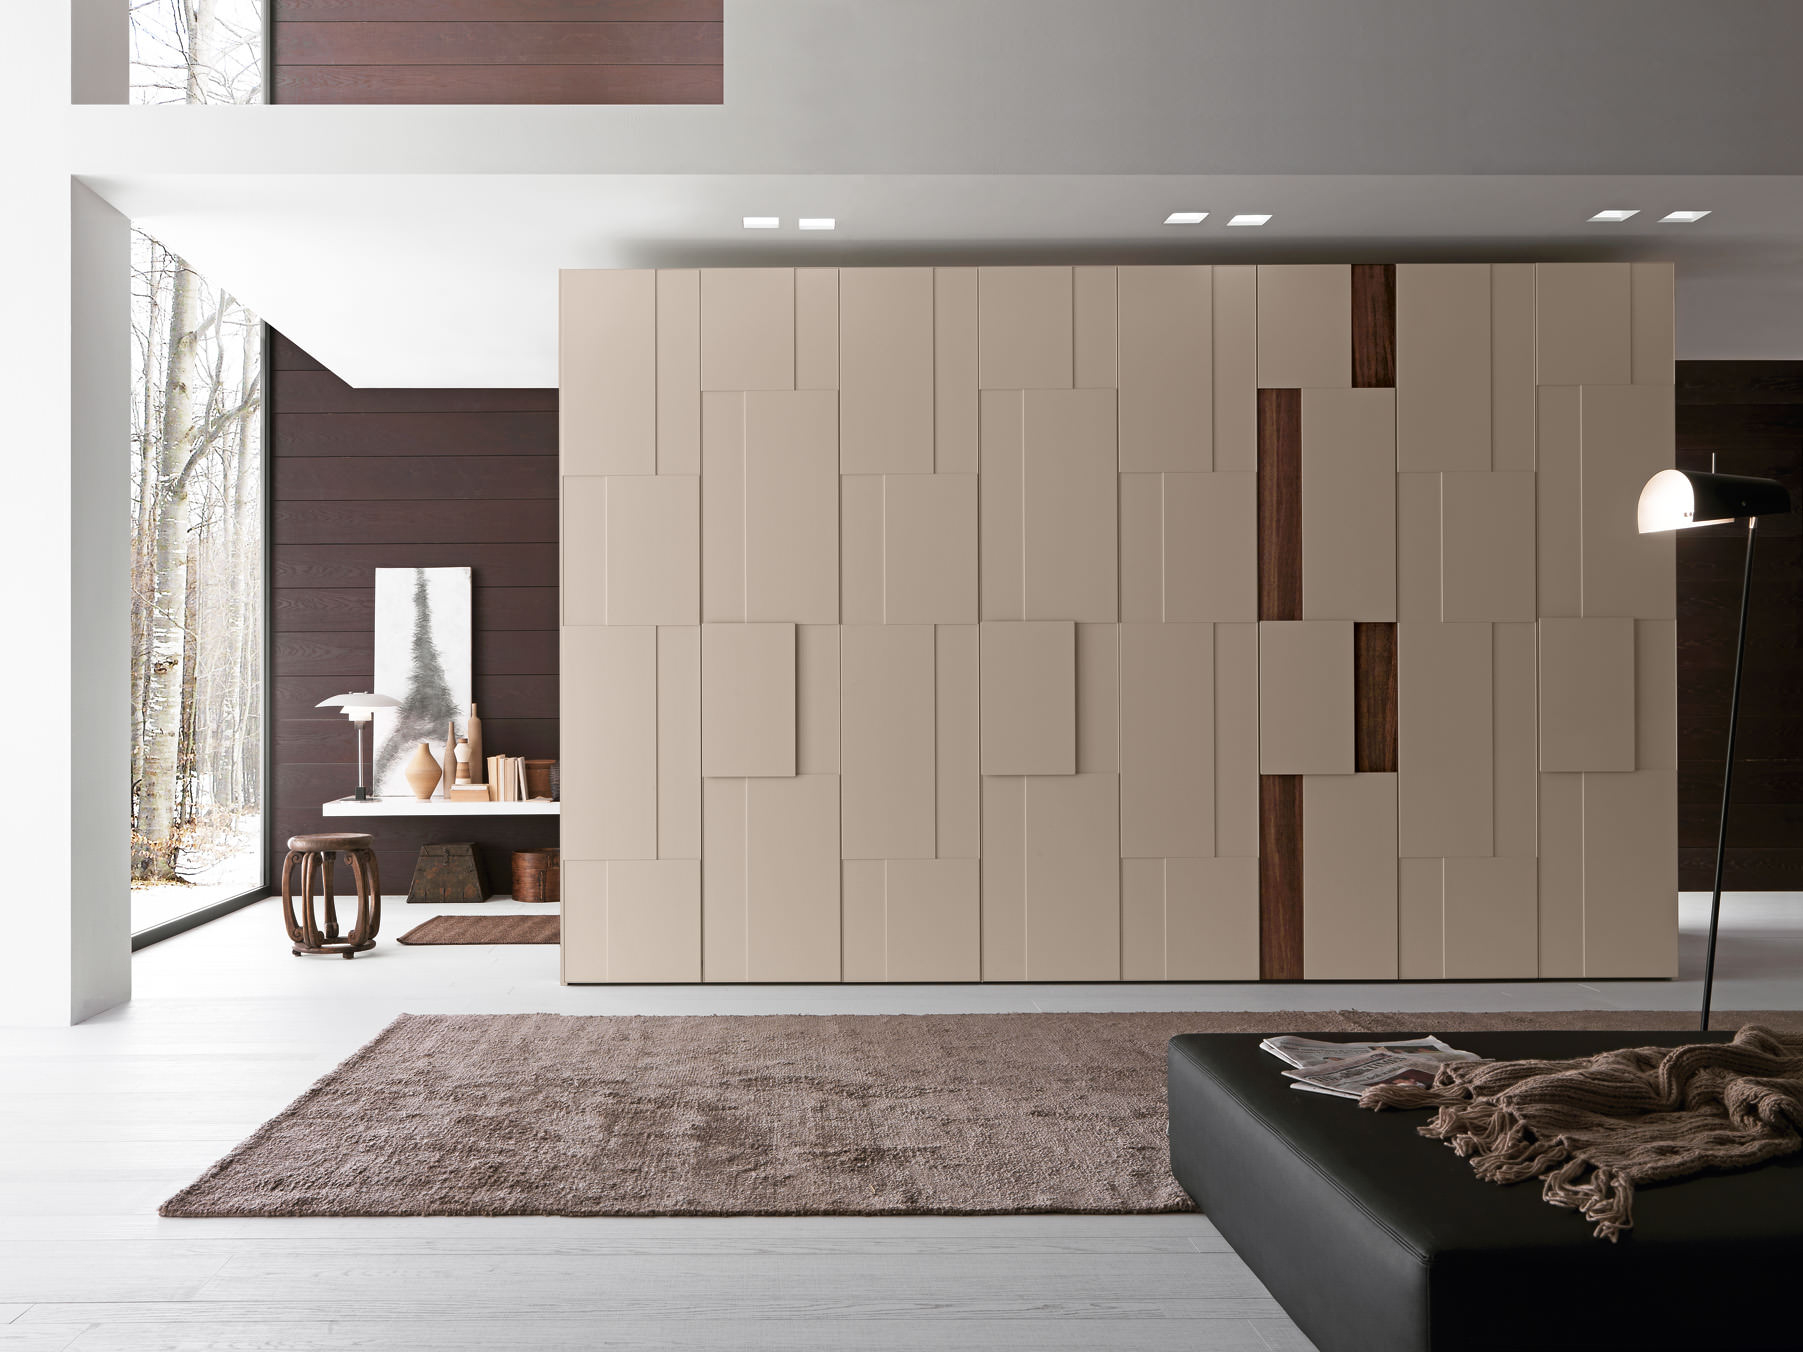 Modern Wardrobes Trend Home Designs Design Trends Premium Psd pertaining to 12 Smart Ways How to Upgrade Modern Wardrobes Designs For Bedrooms